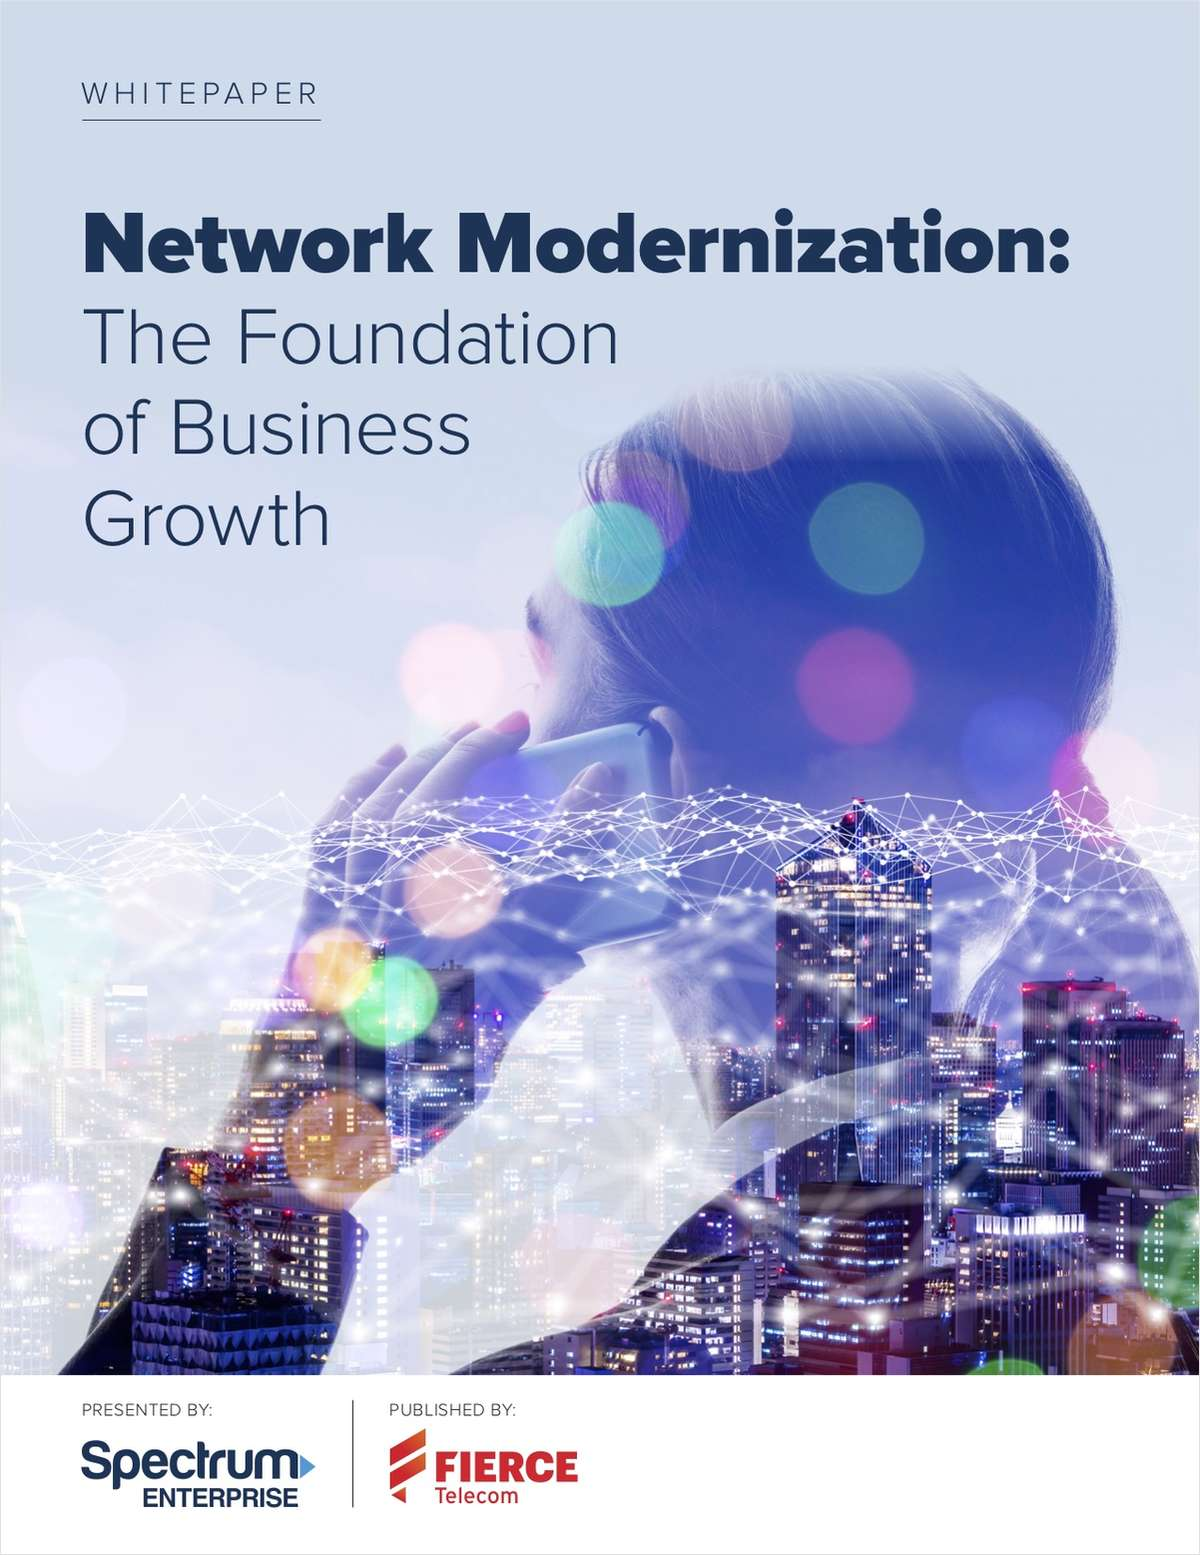 Network Modernization: The Foundation of Business Growth